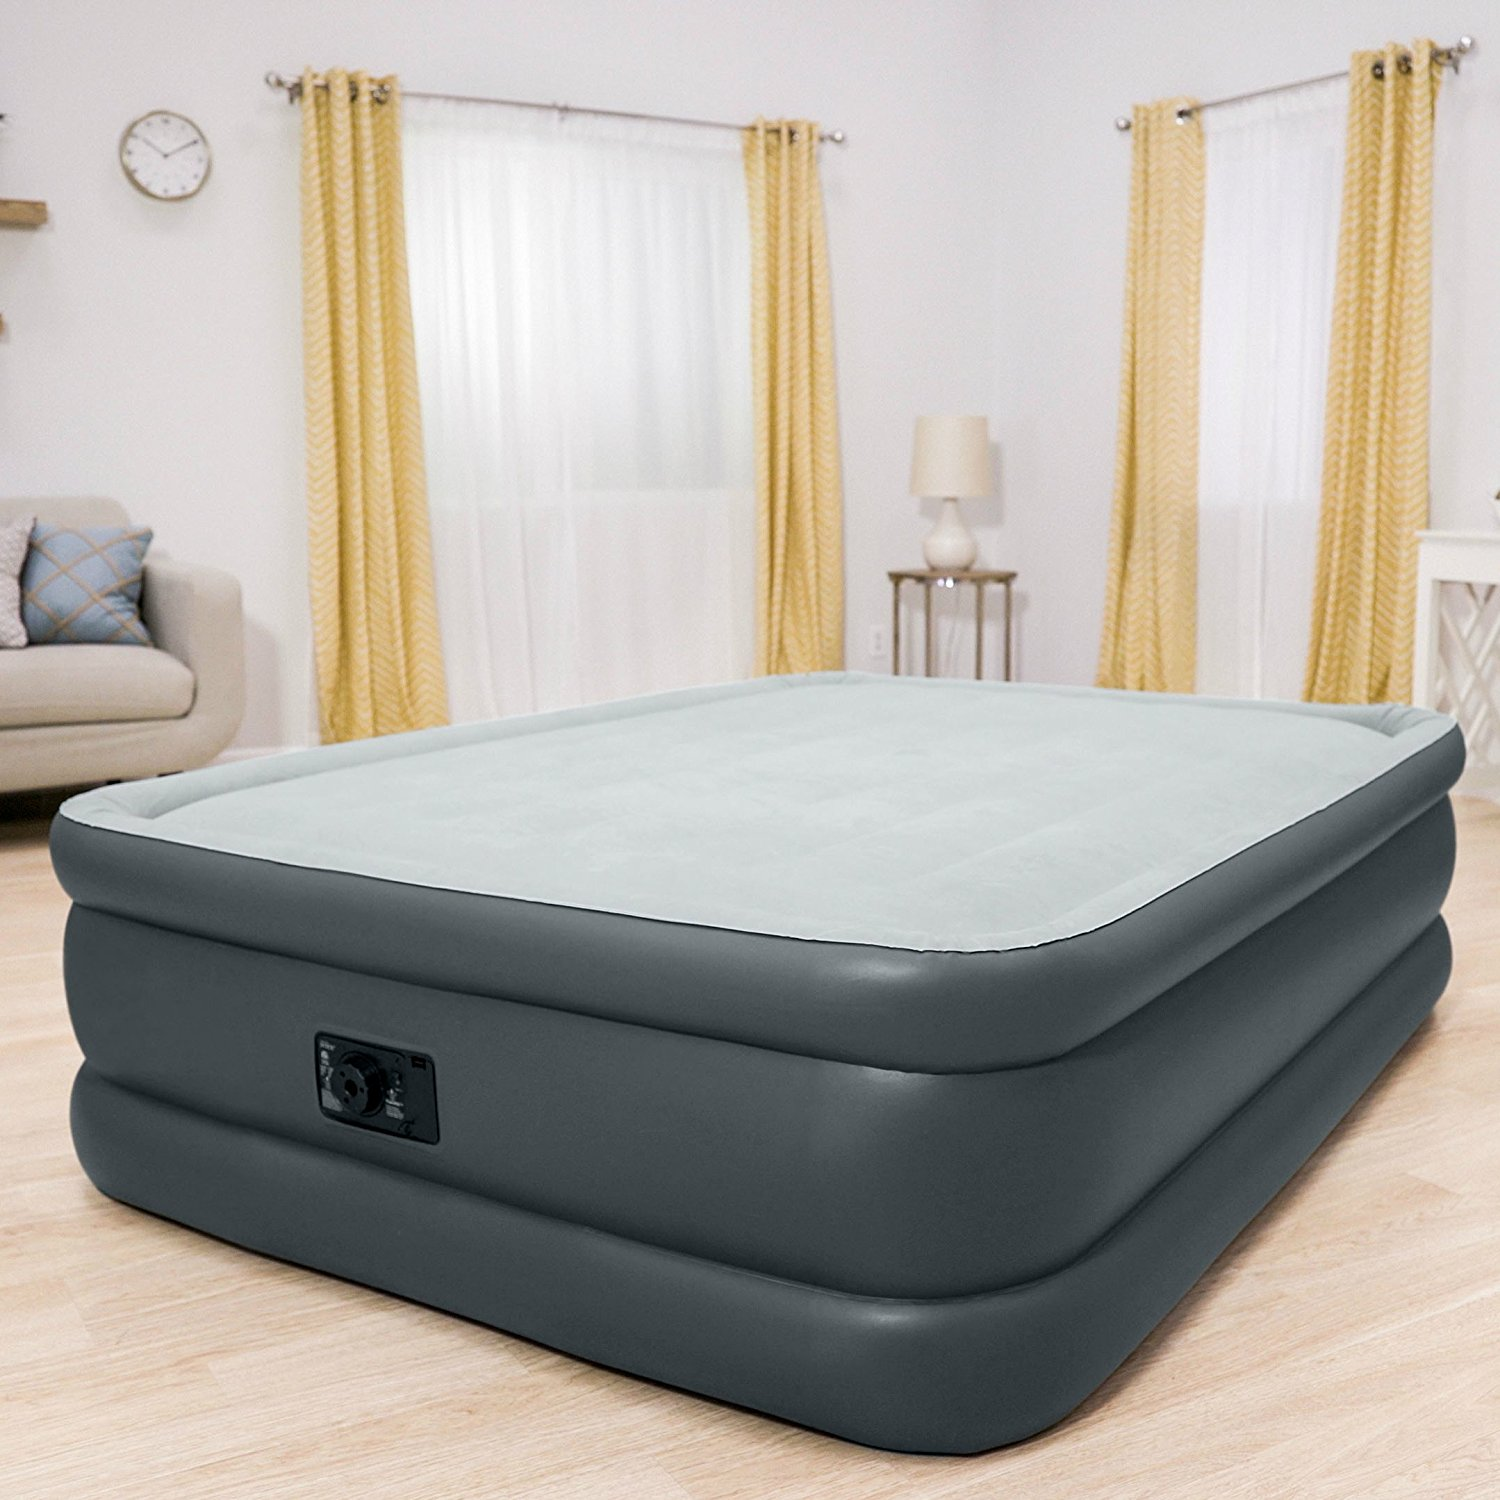 Intex Queen 22 DuraBeam High Rise Air Mattress